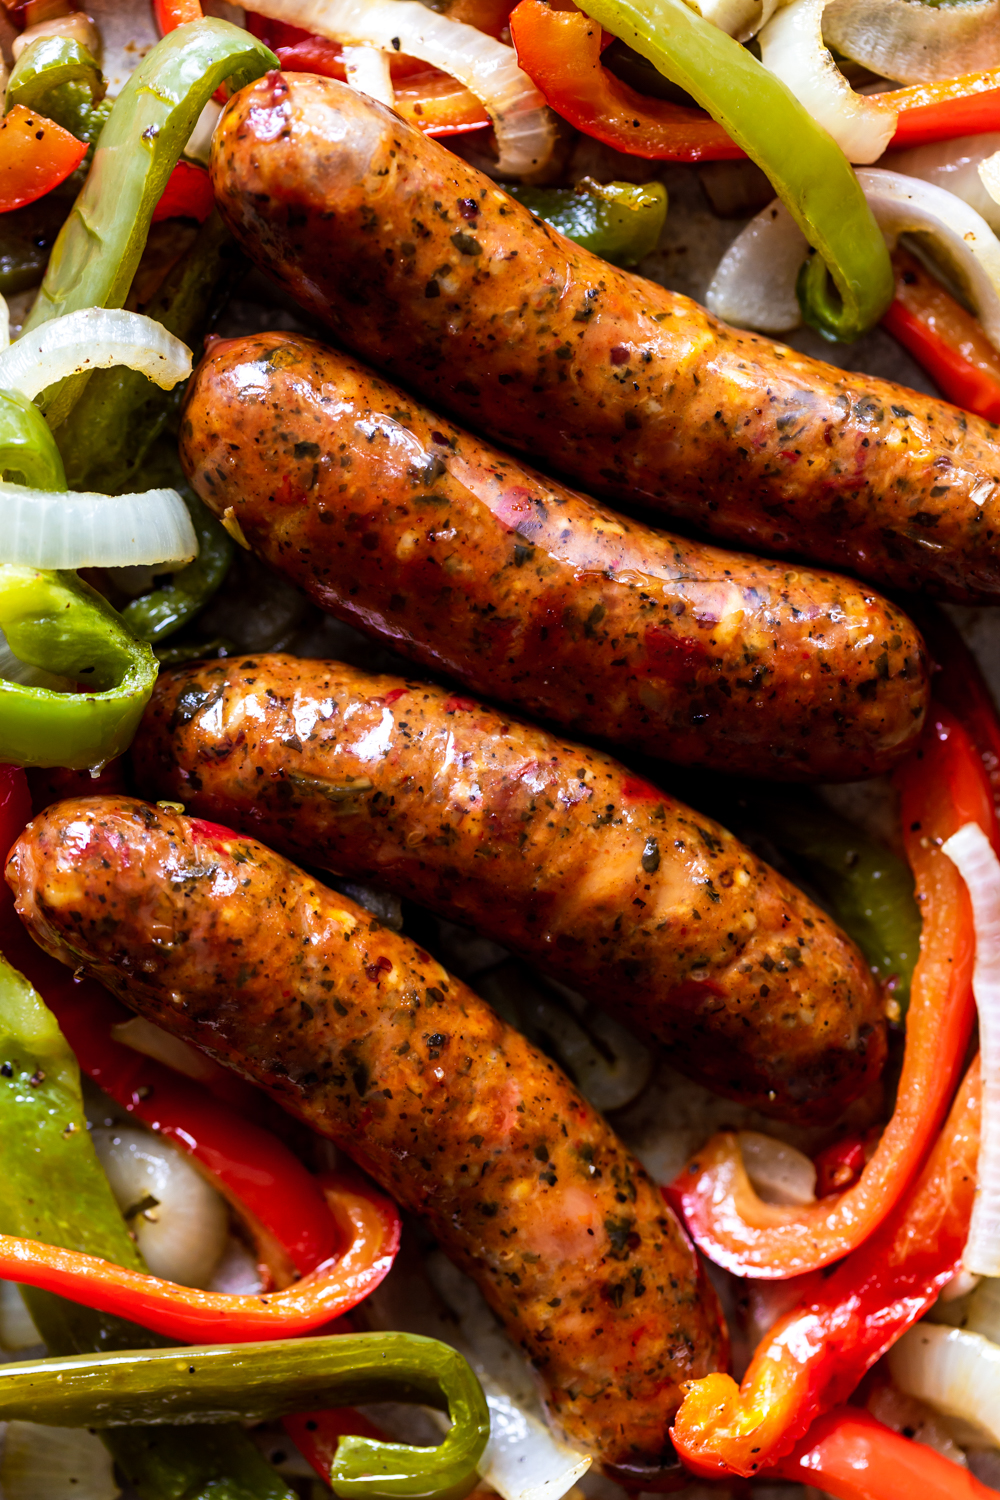 Cooked sausages with bell peppers and onions